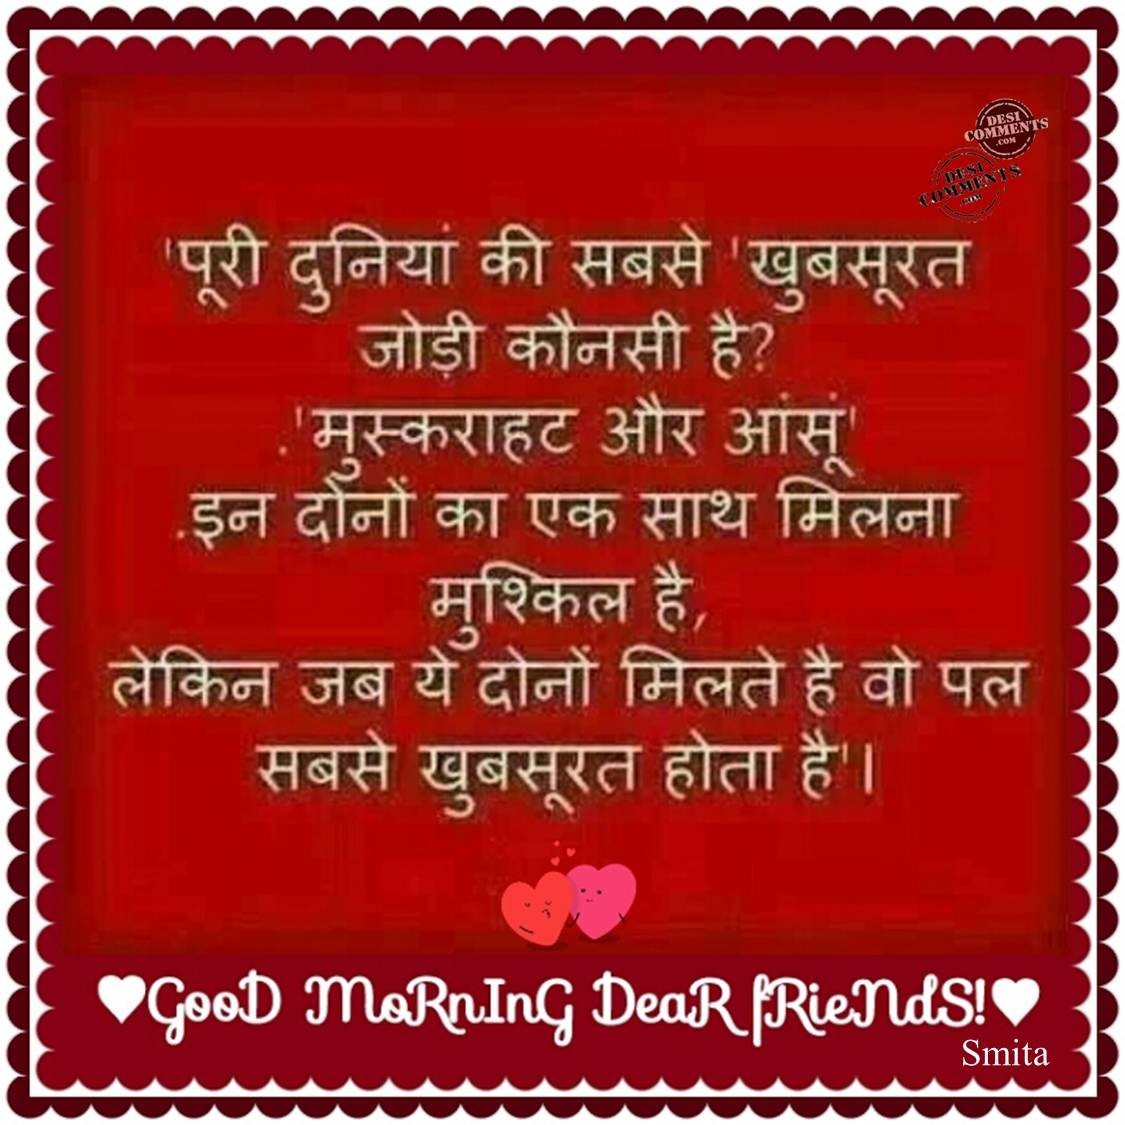 Friend good morning images in hindi